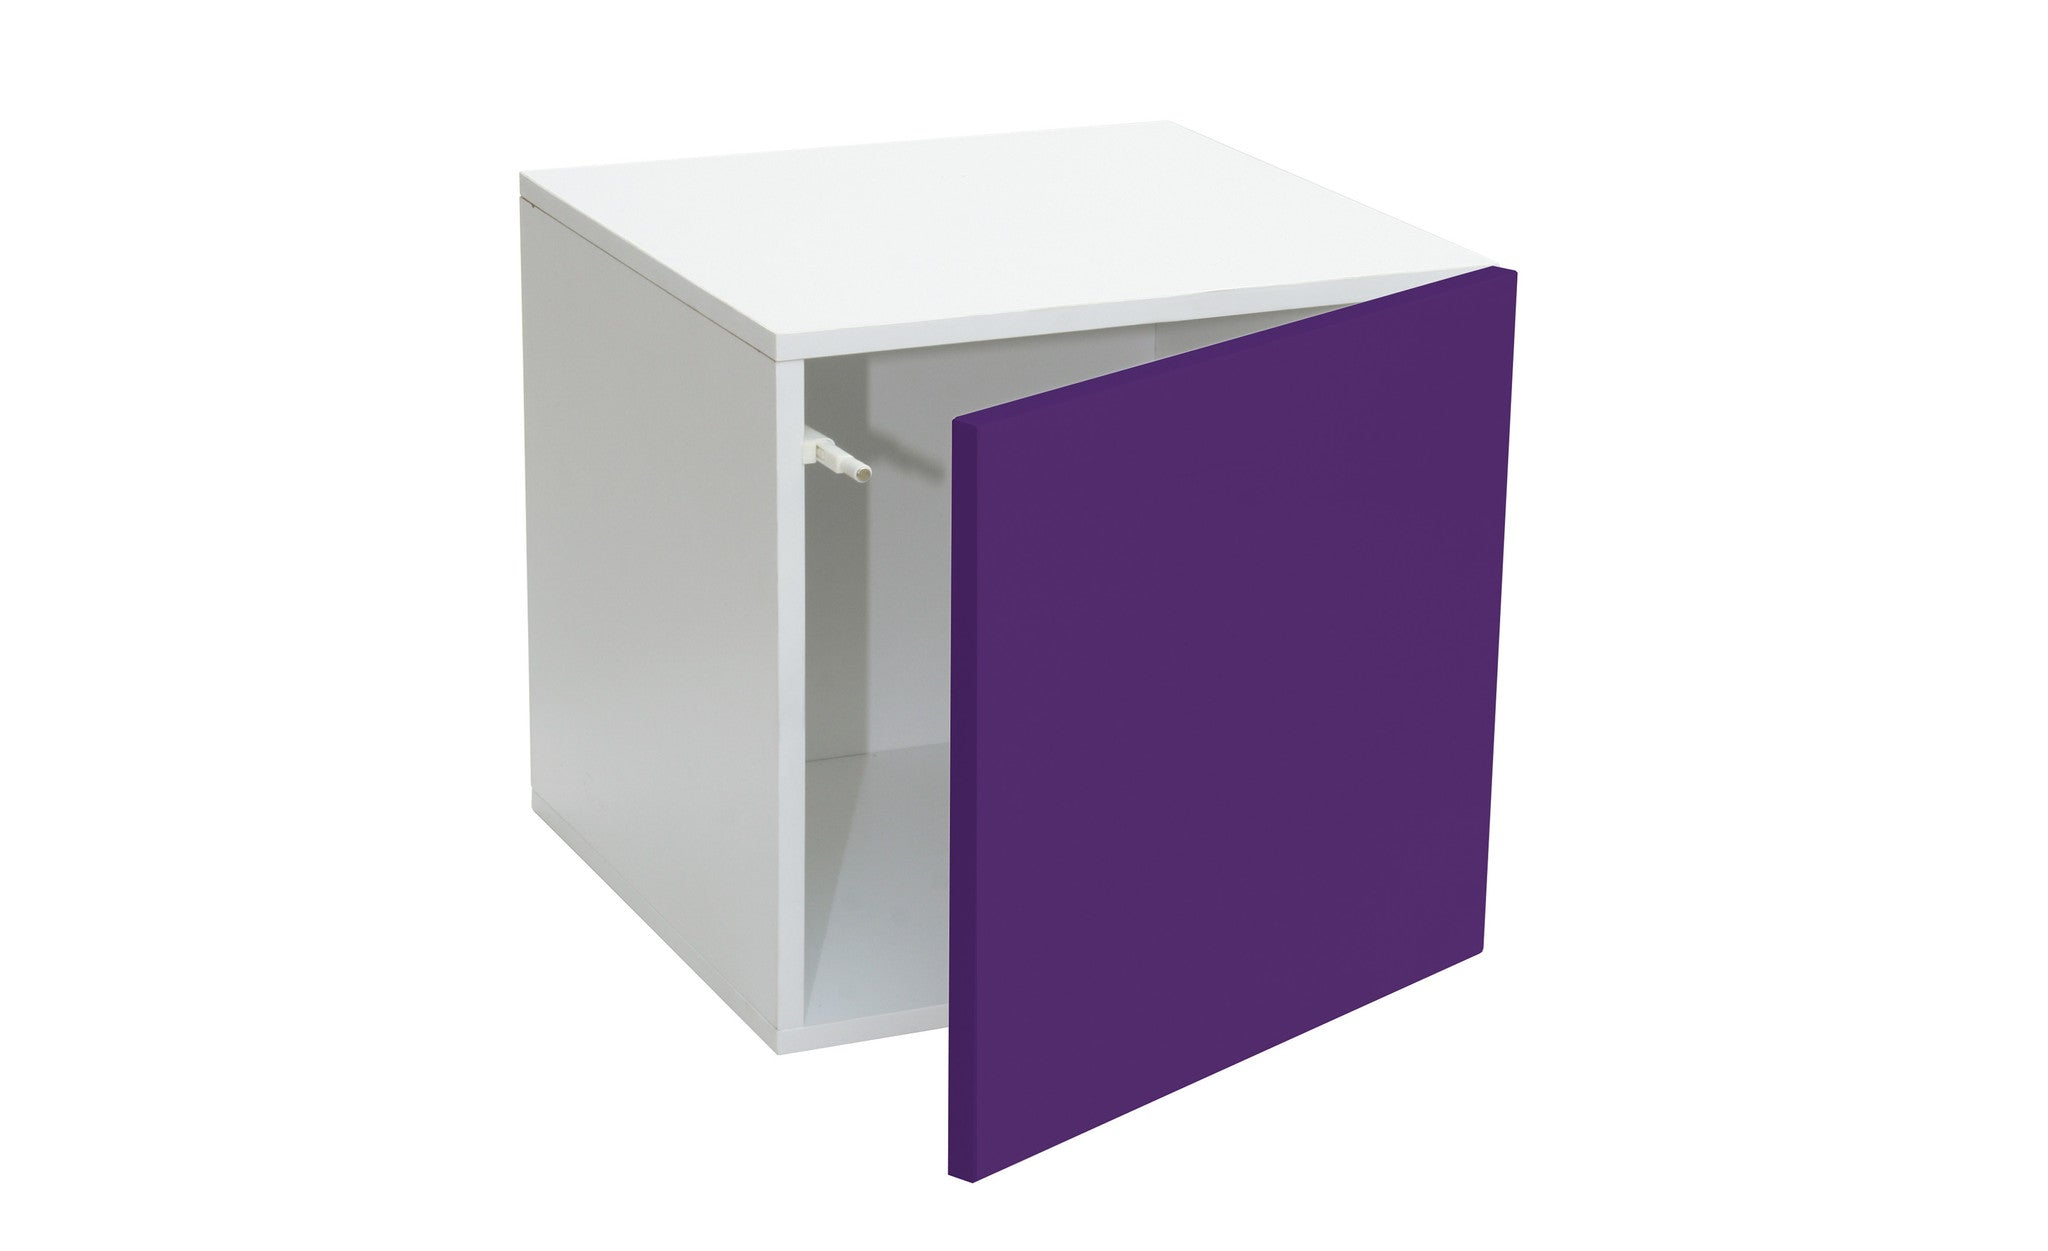 Prana   Door Container With Purple High Gloss Finish, Push Open System    Designs By